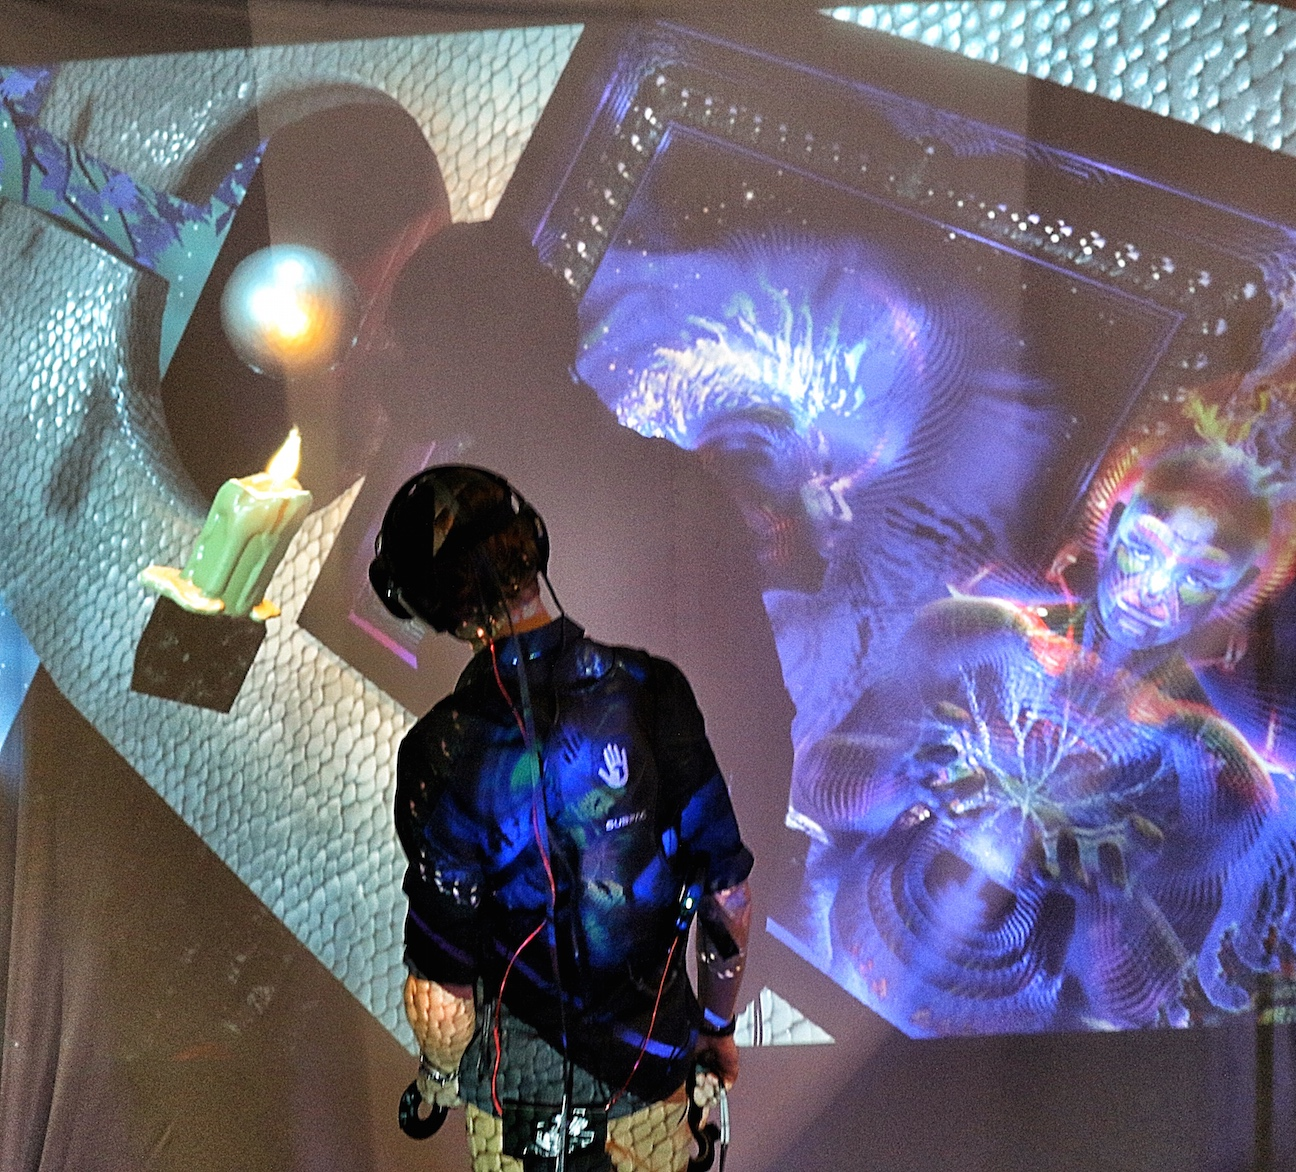 Galactic Gallery immersive virtual art experience